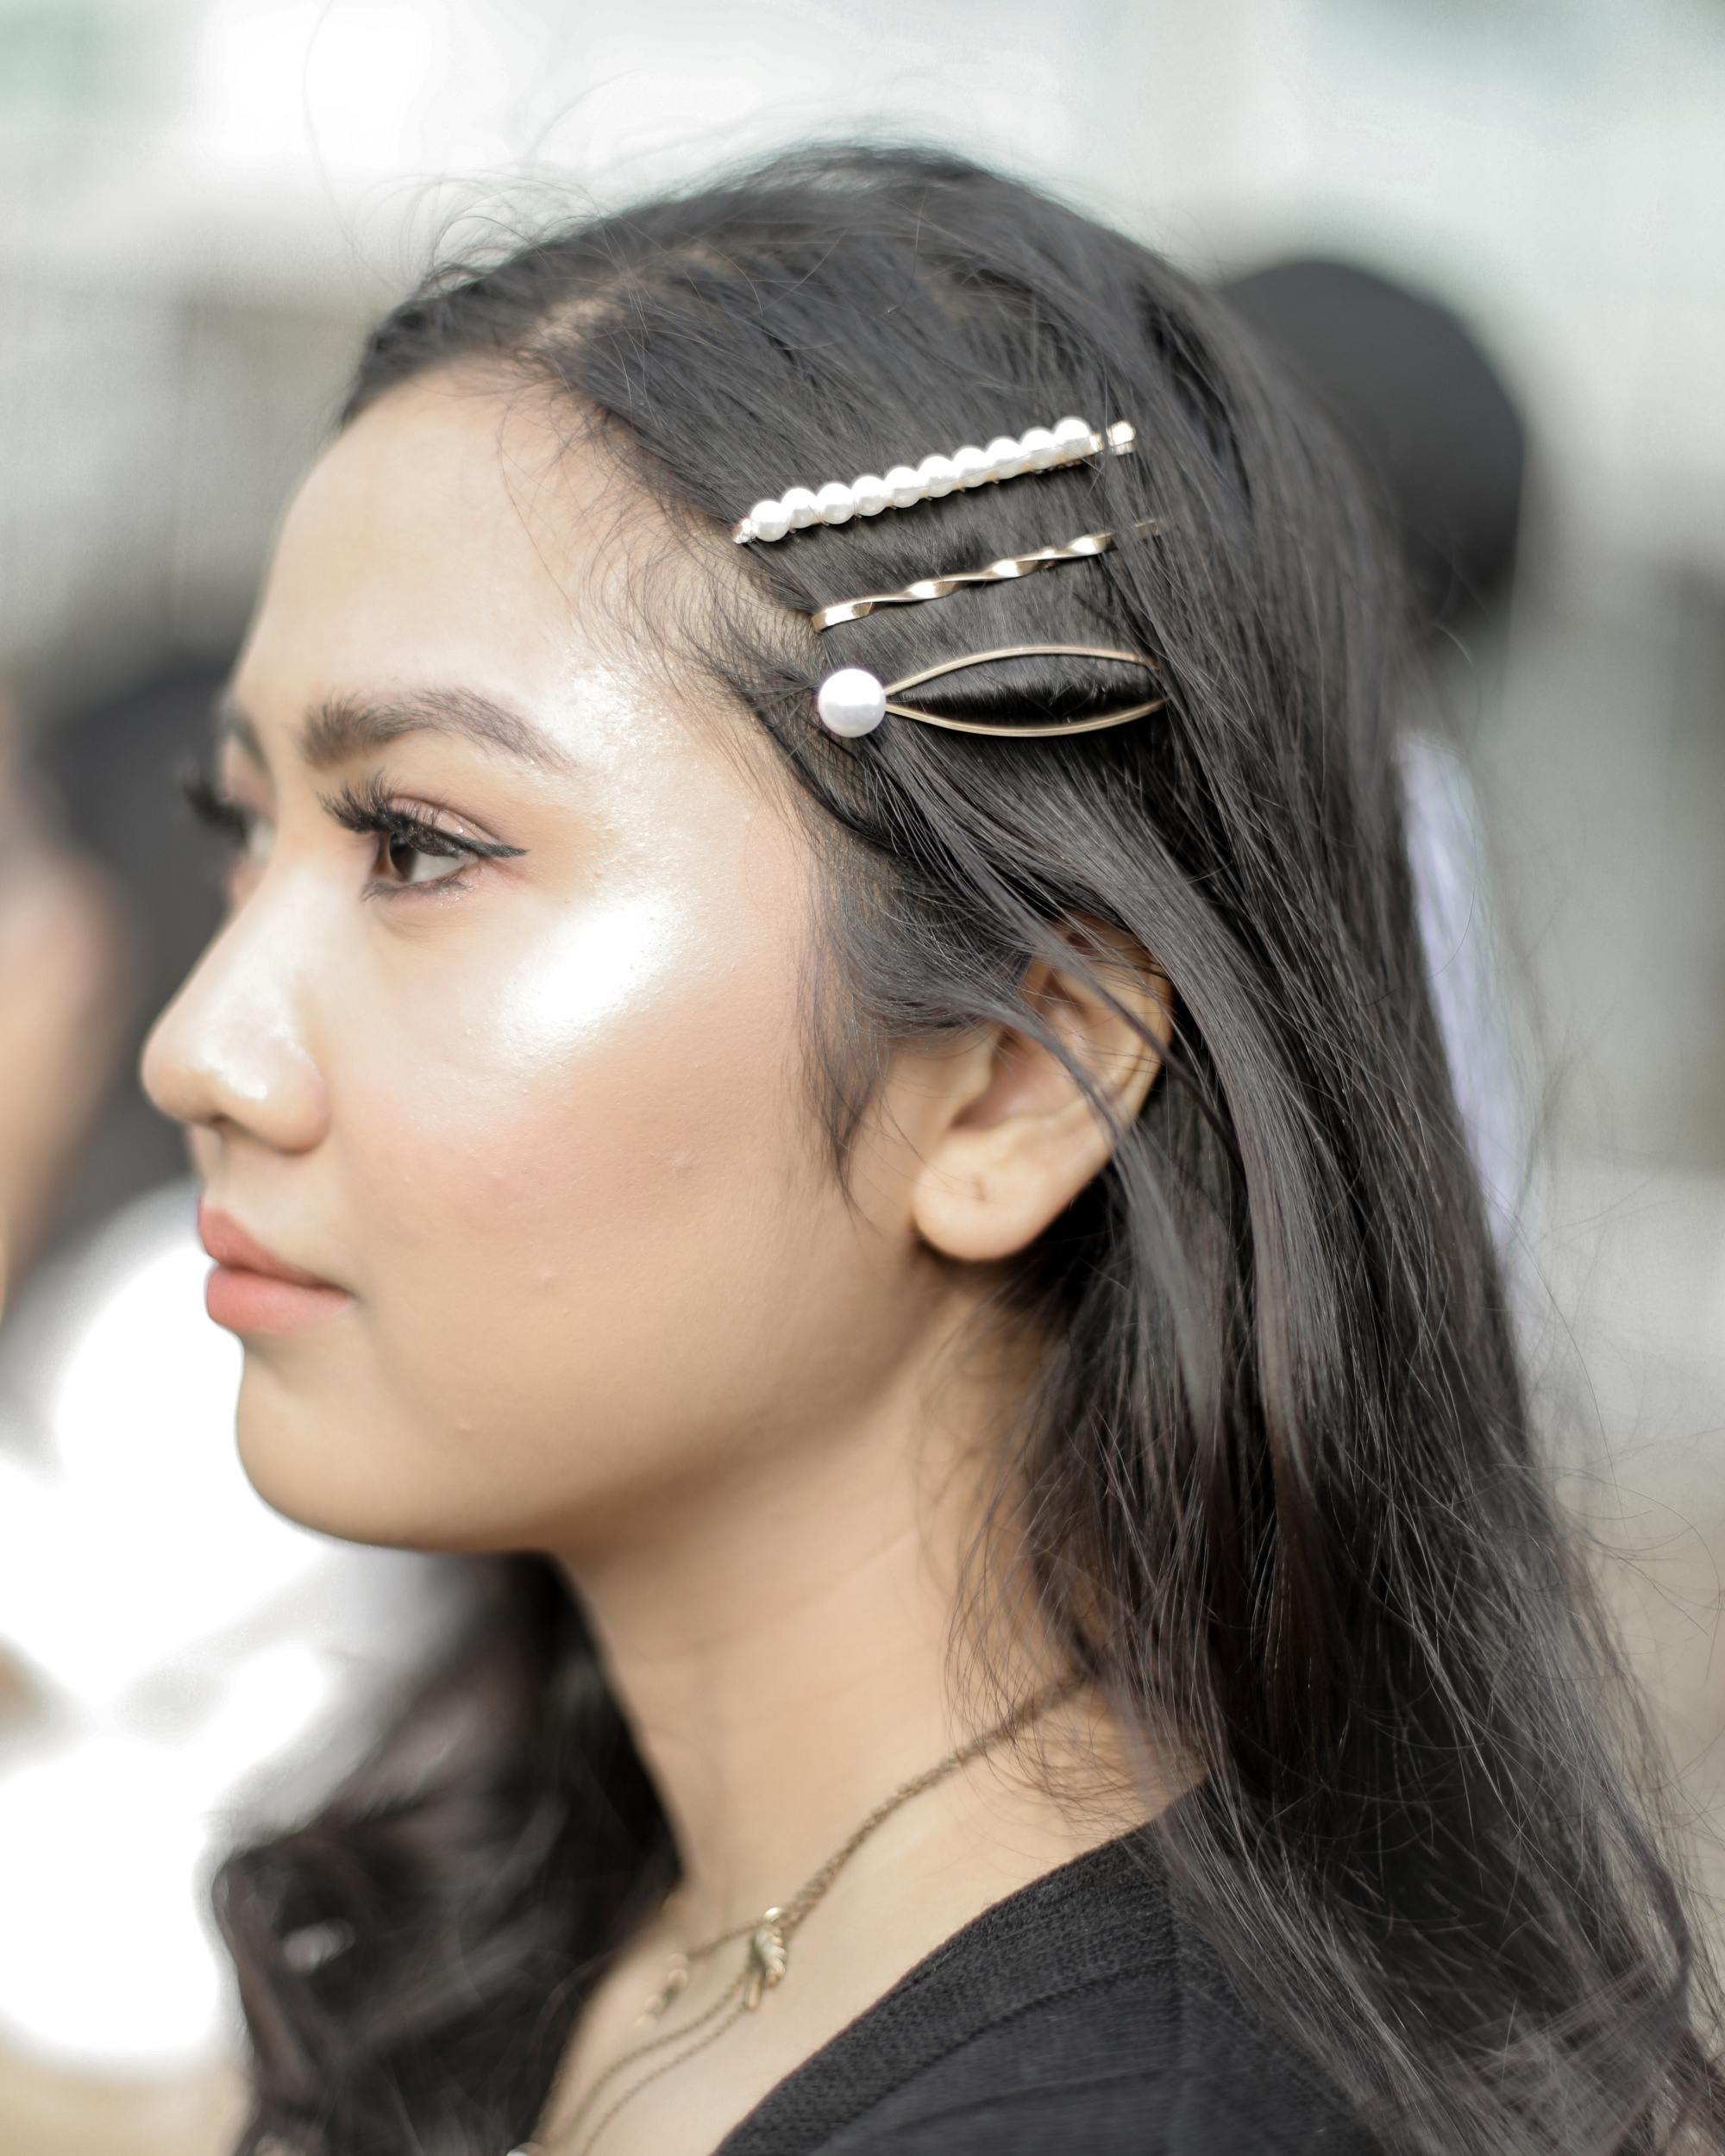 Side view of an Asian woman with different hair clips on her long black hair